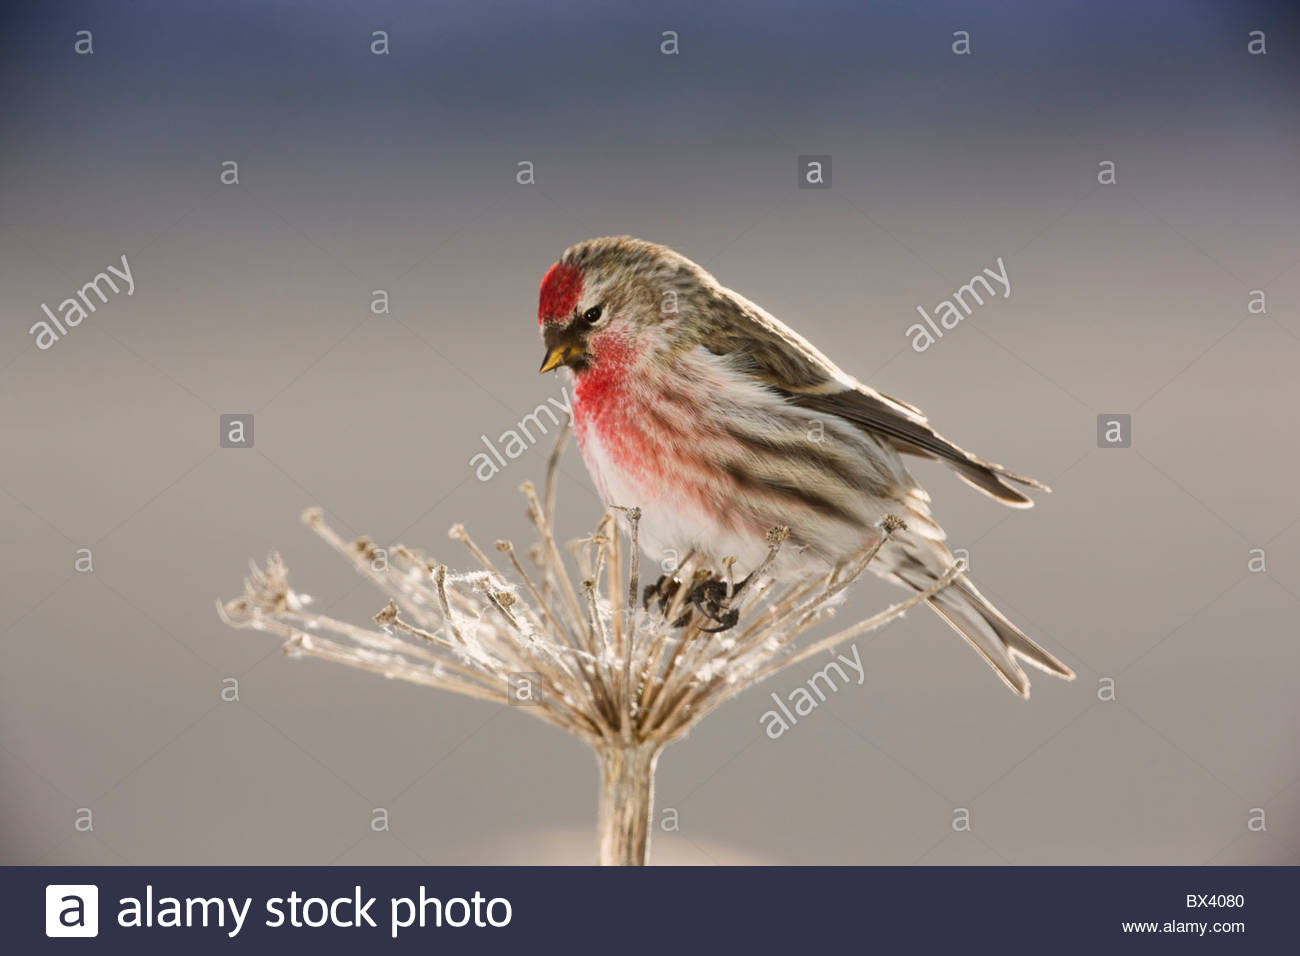 Common Redpoll, Seward, Alaska. (Carduelis flammea) Stock Photo